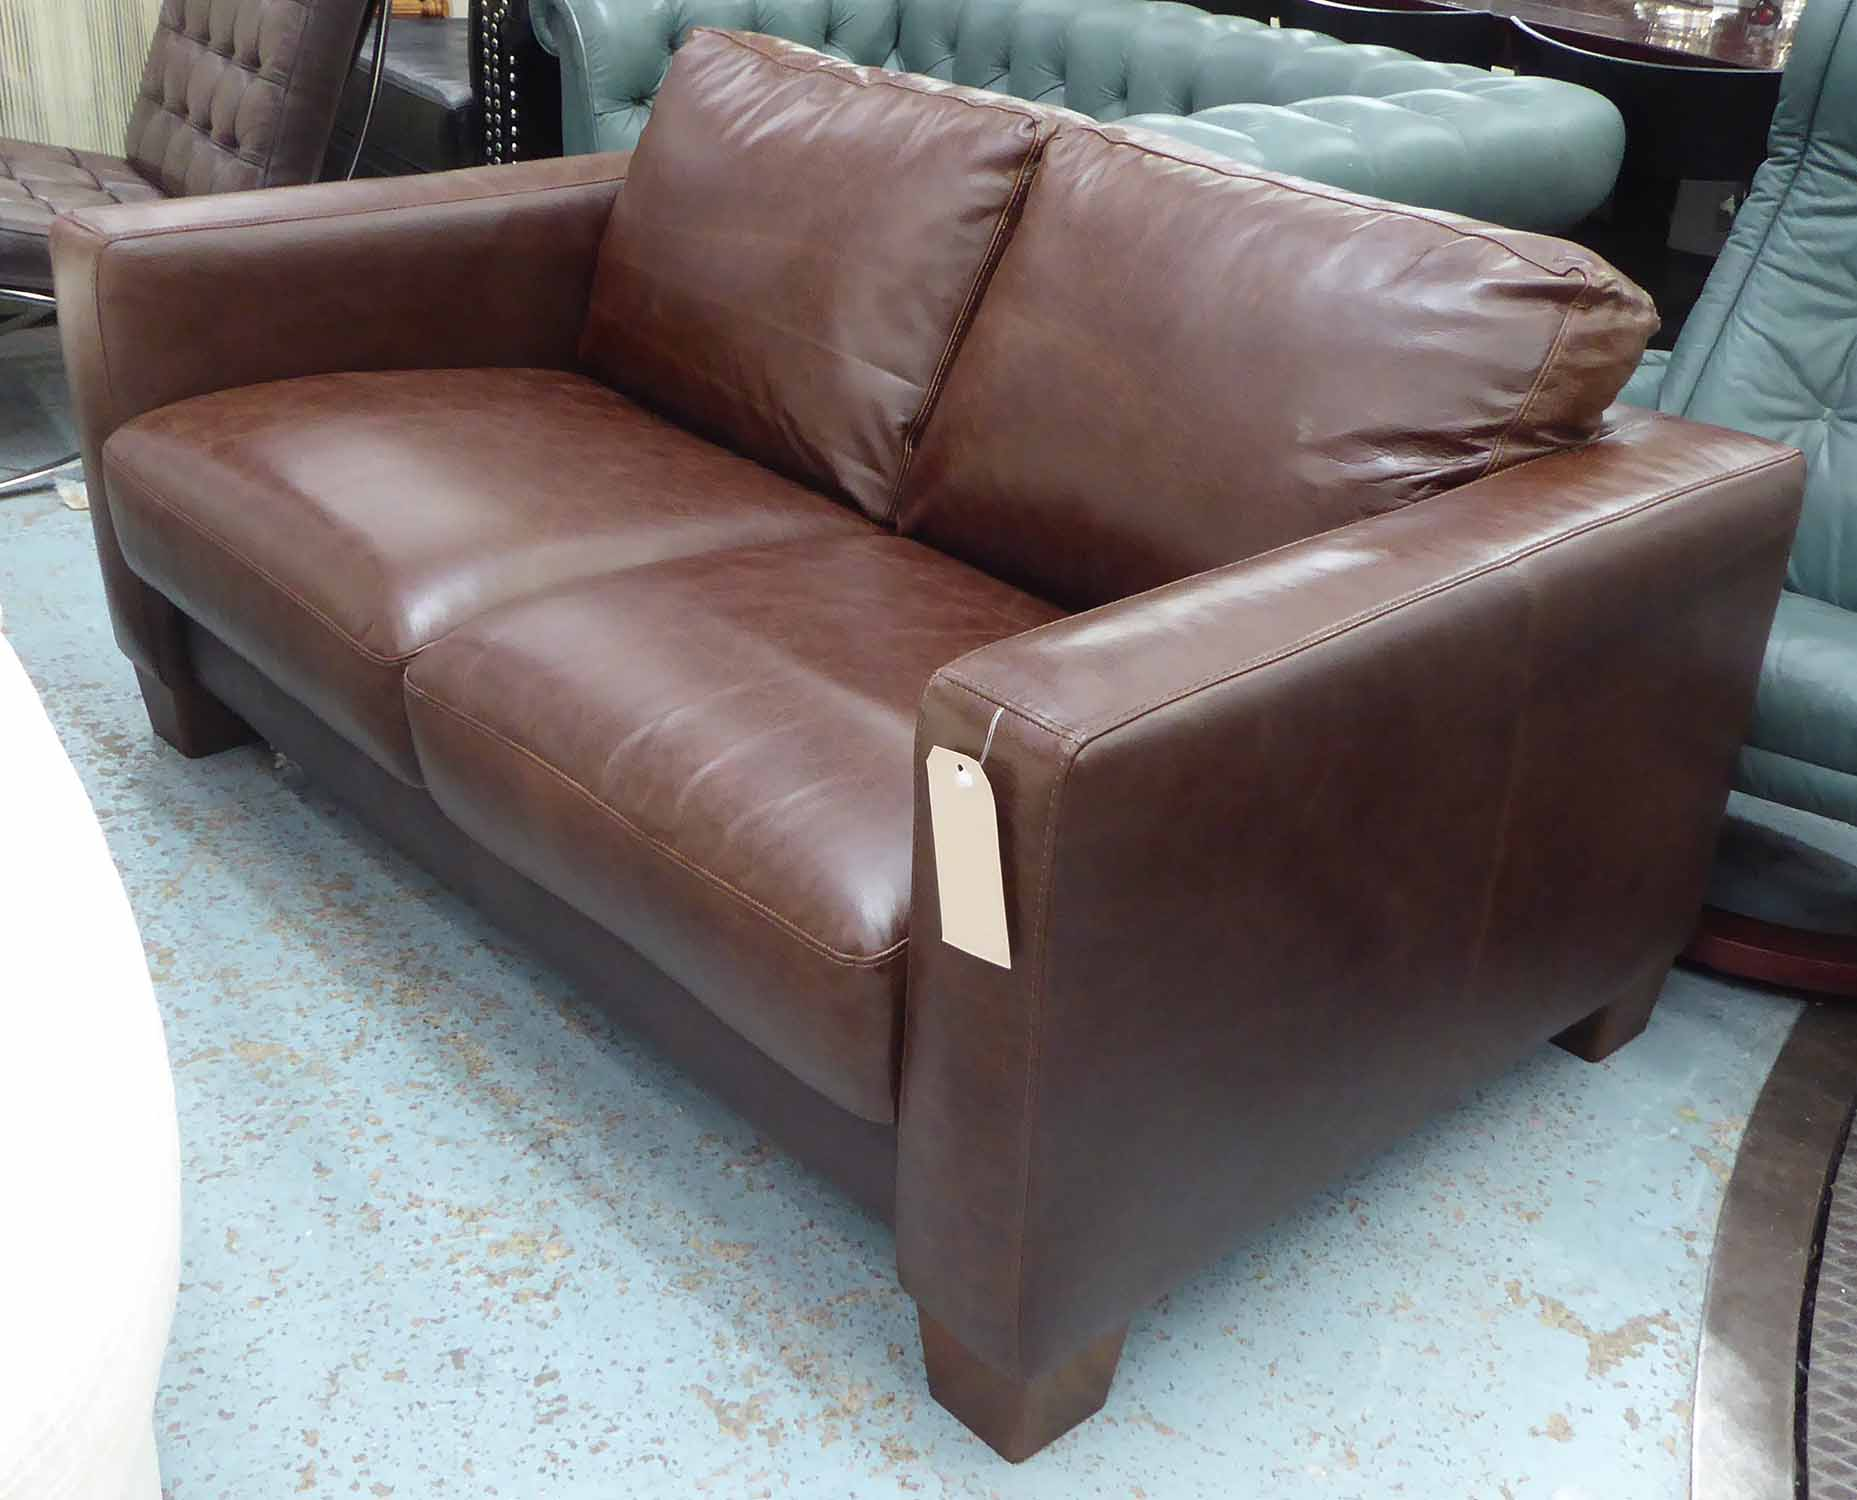 Lot 19 - SOFA, two seater in brown leather, 155cm L x 93cm W x 75cm H.